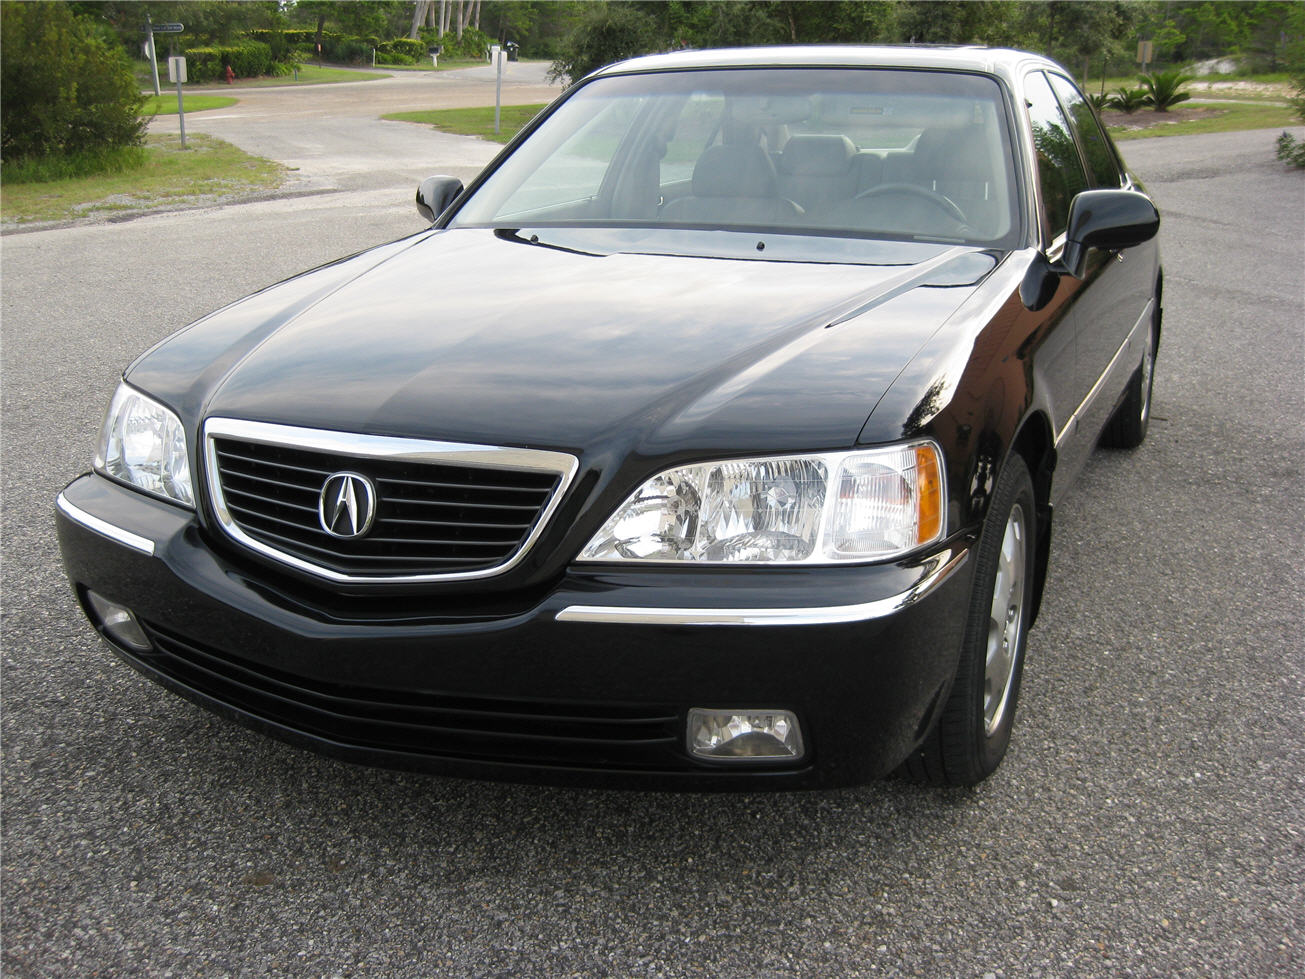 Acura rl photo - 4